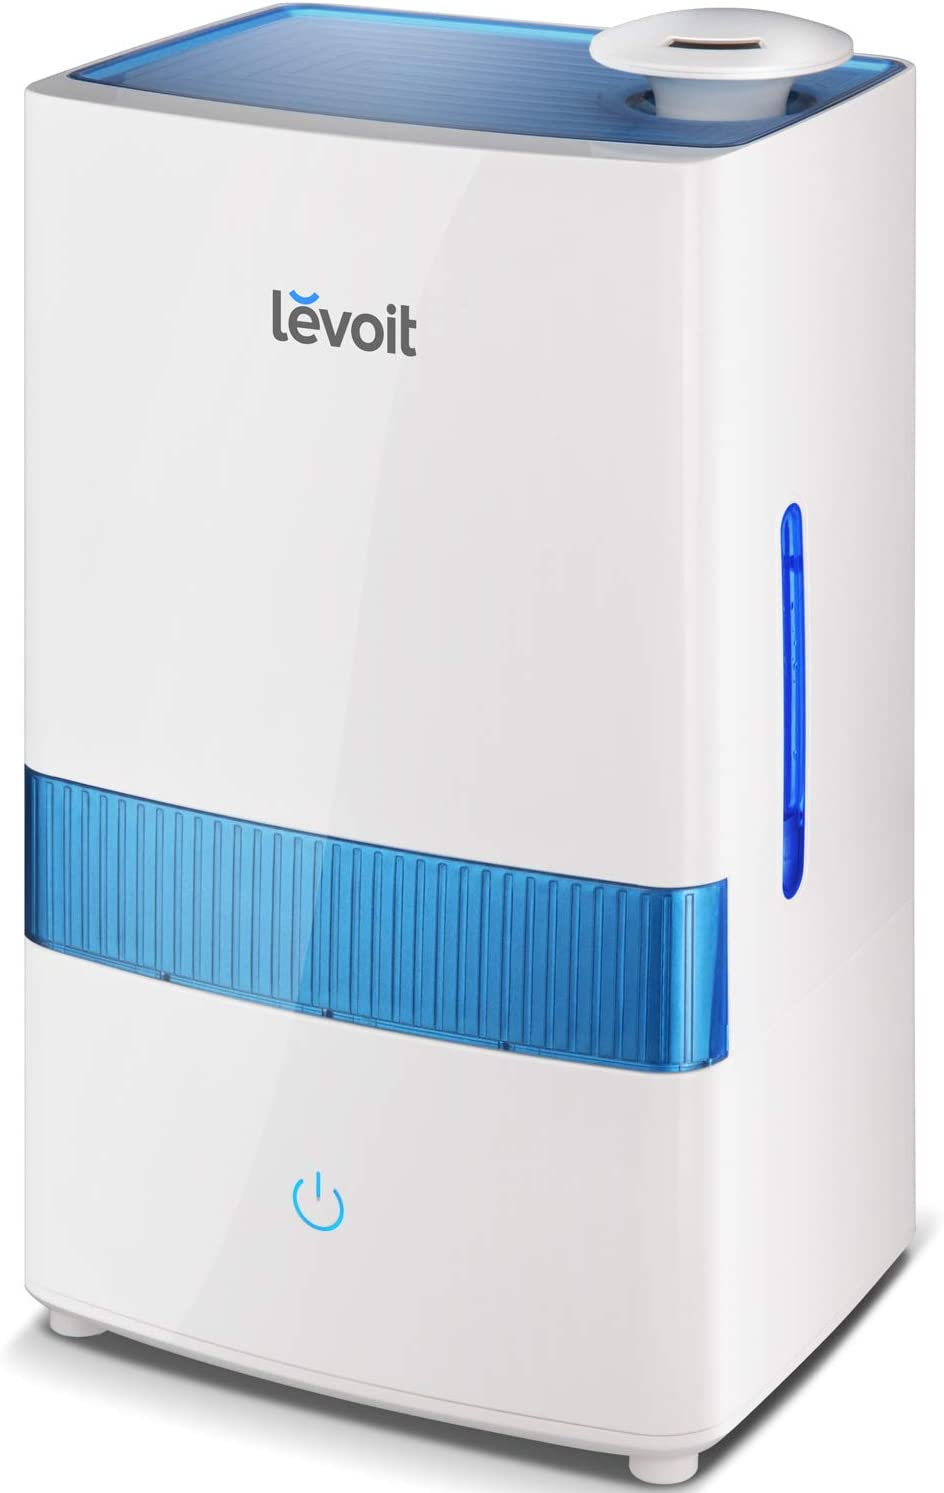 7 Best Humidifier for Singers – Reviews and Buyer's Guide 3